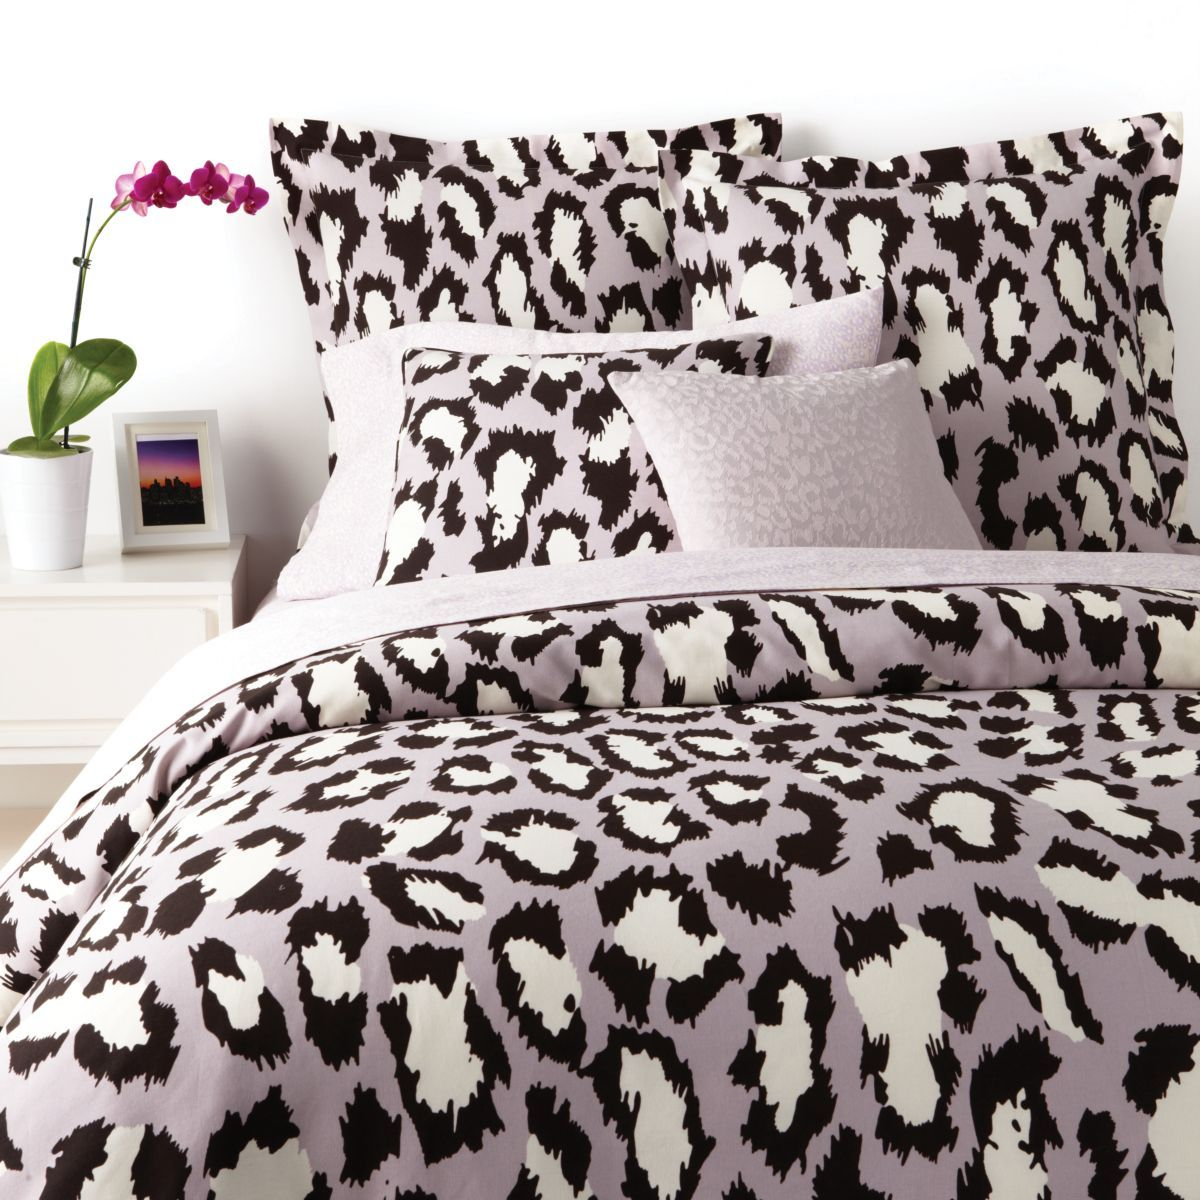 Want This Dvf Bedding From Bloomies It S 400 For The